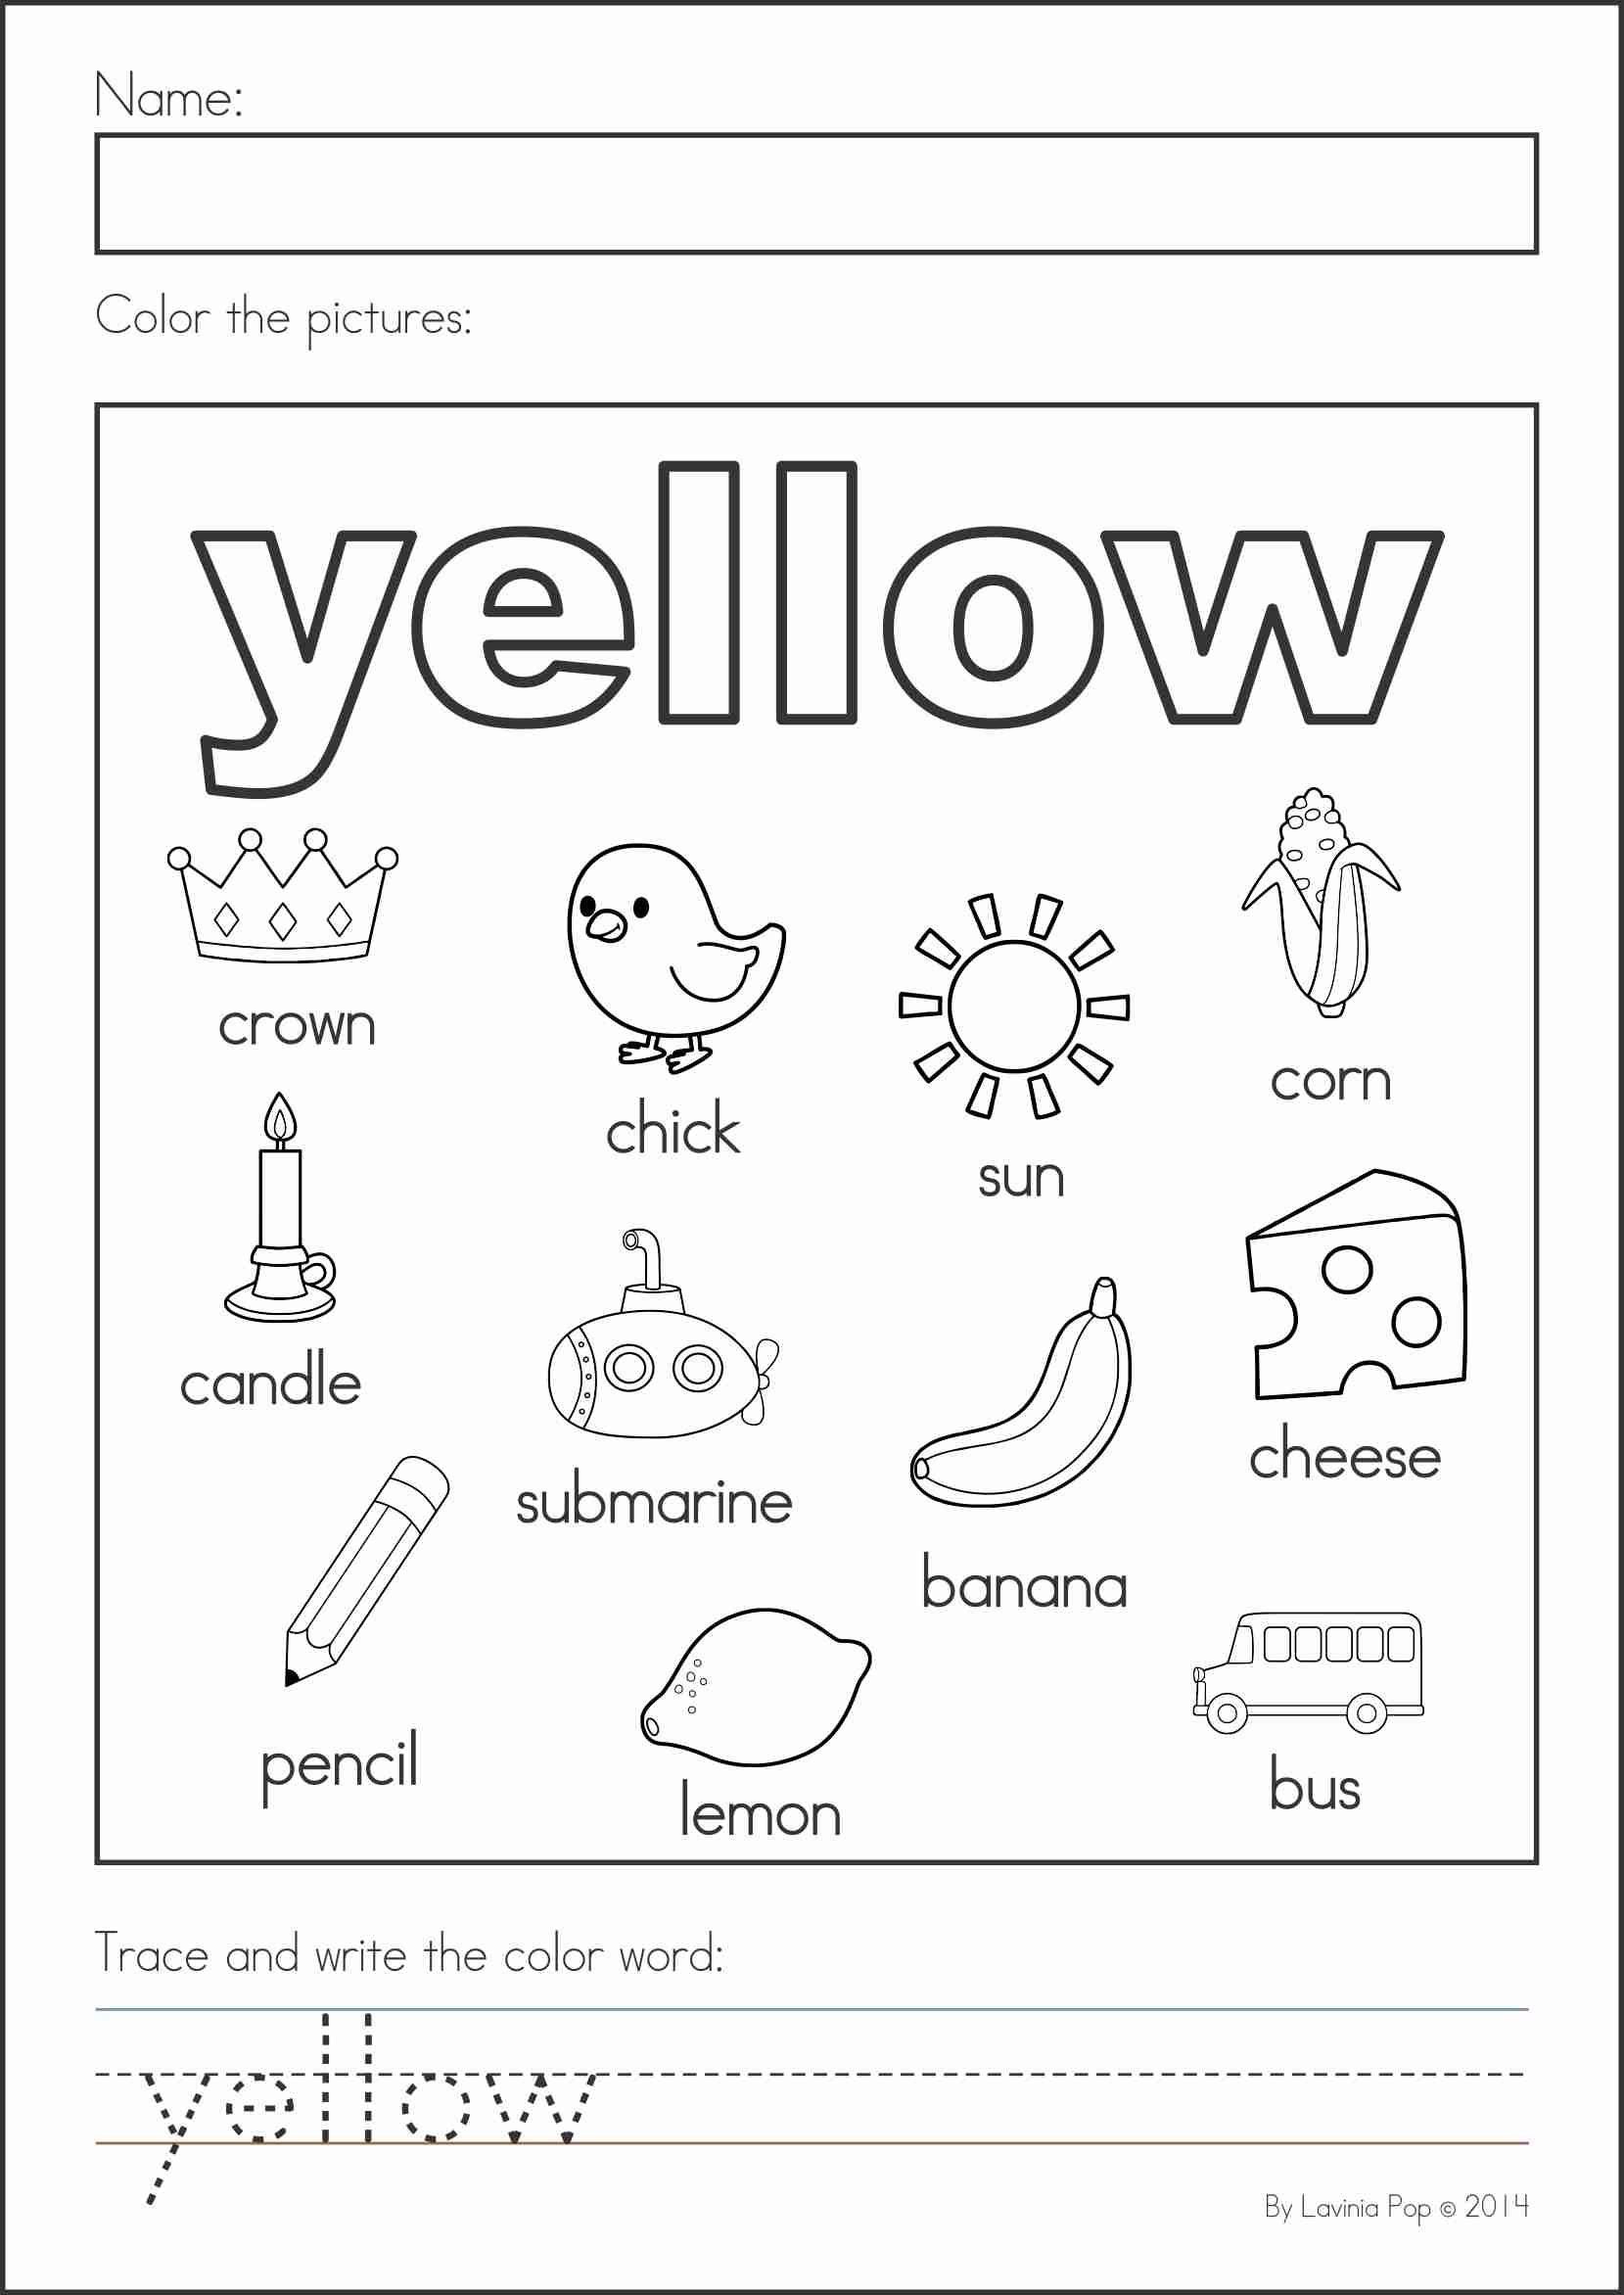 Worksheet For Preschool To Do : Back to school math literacy worksheets and activities